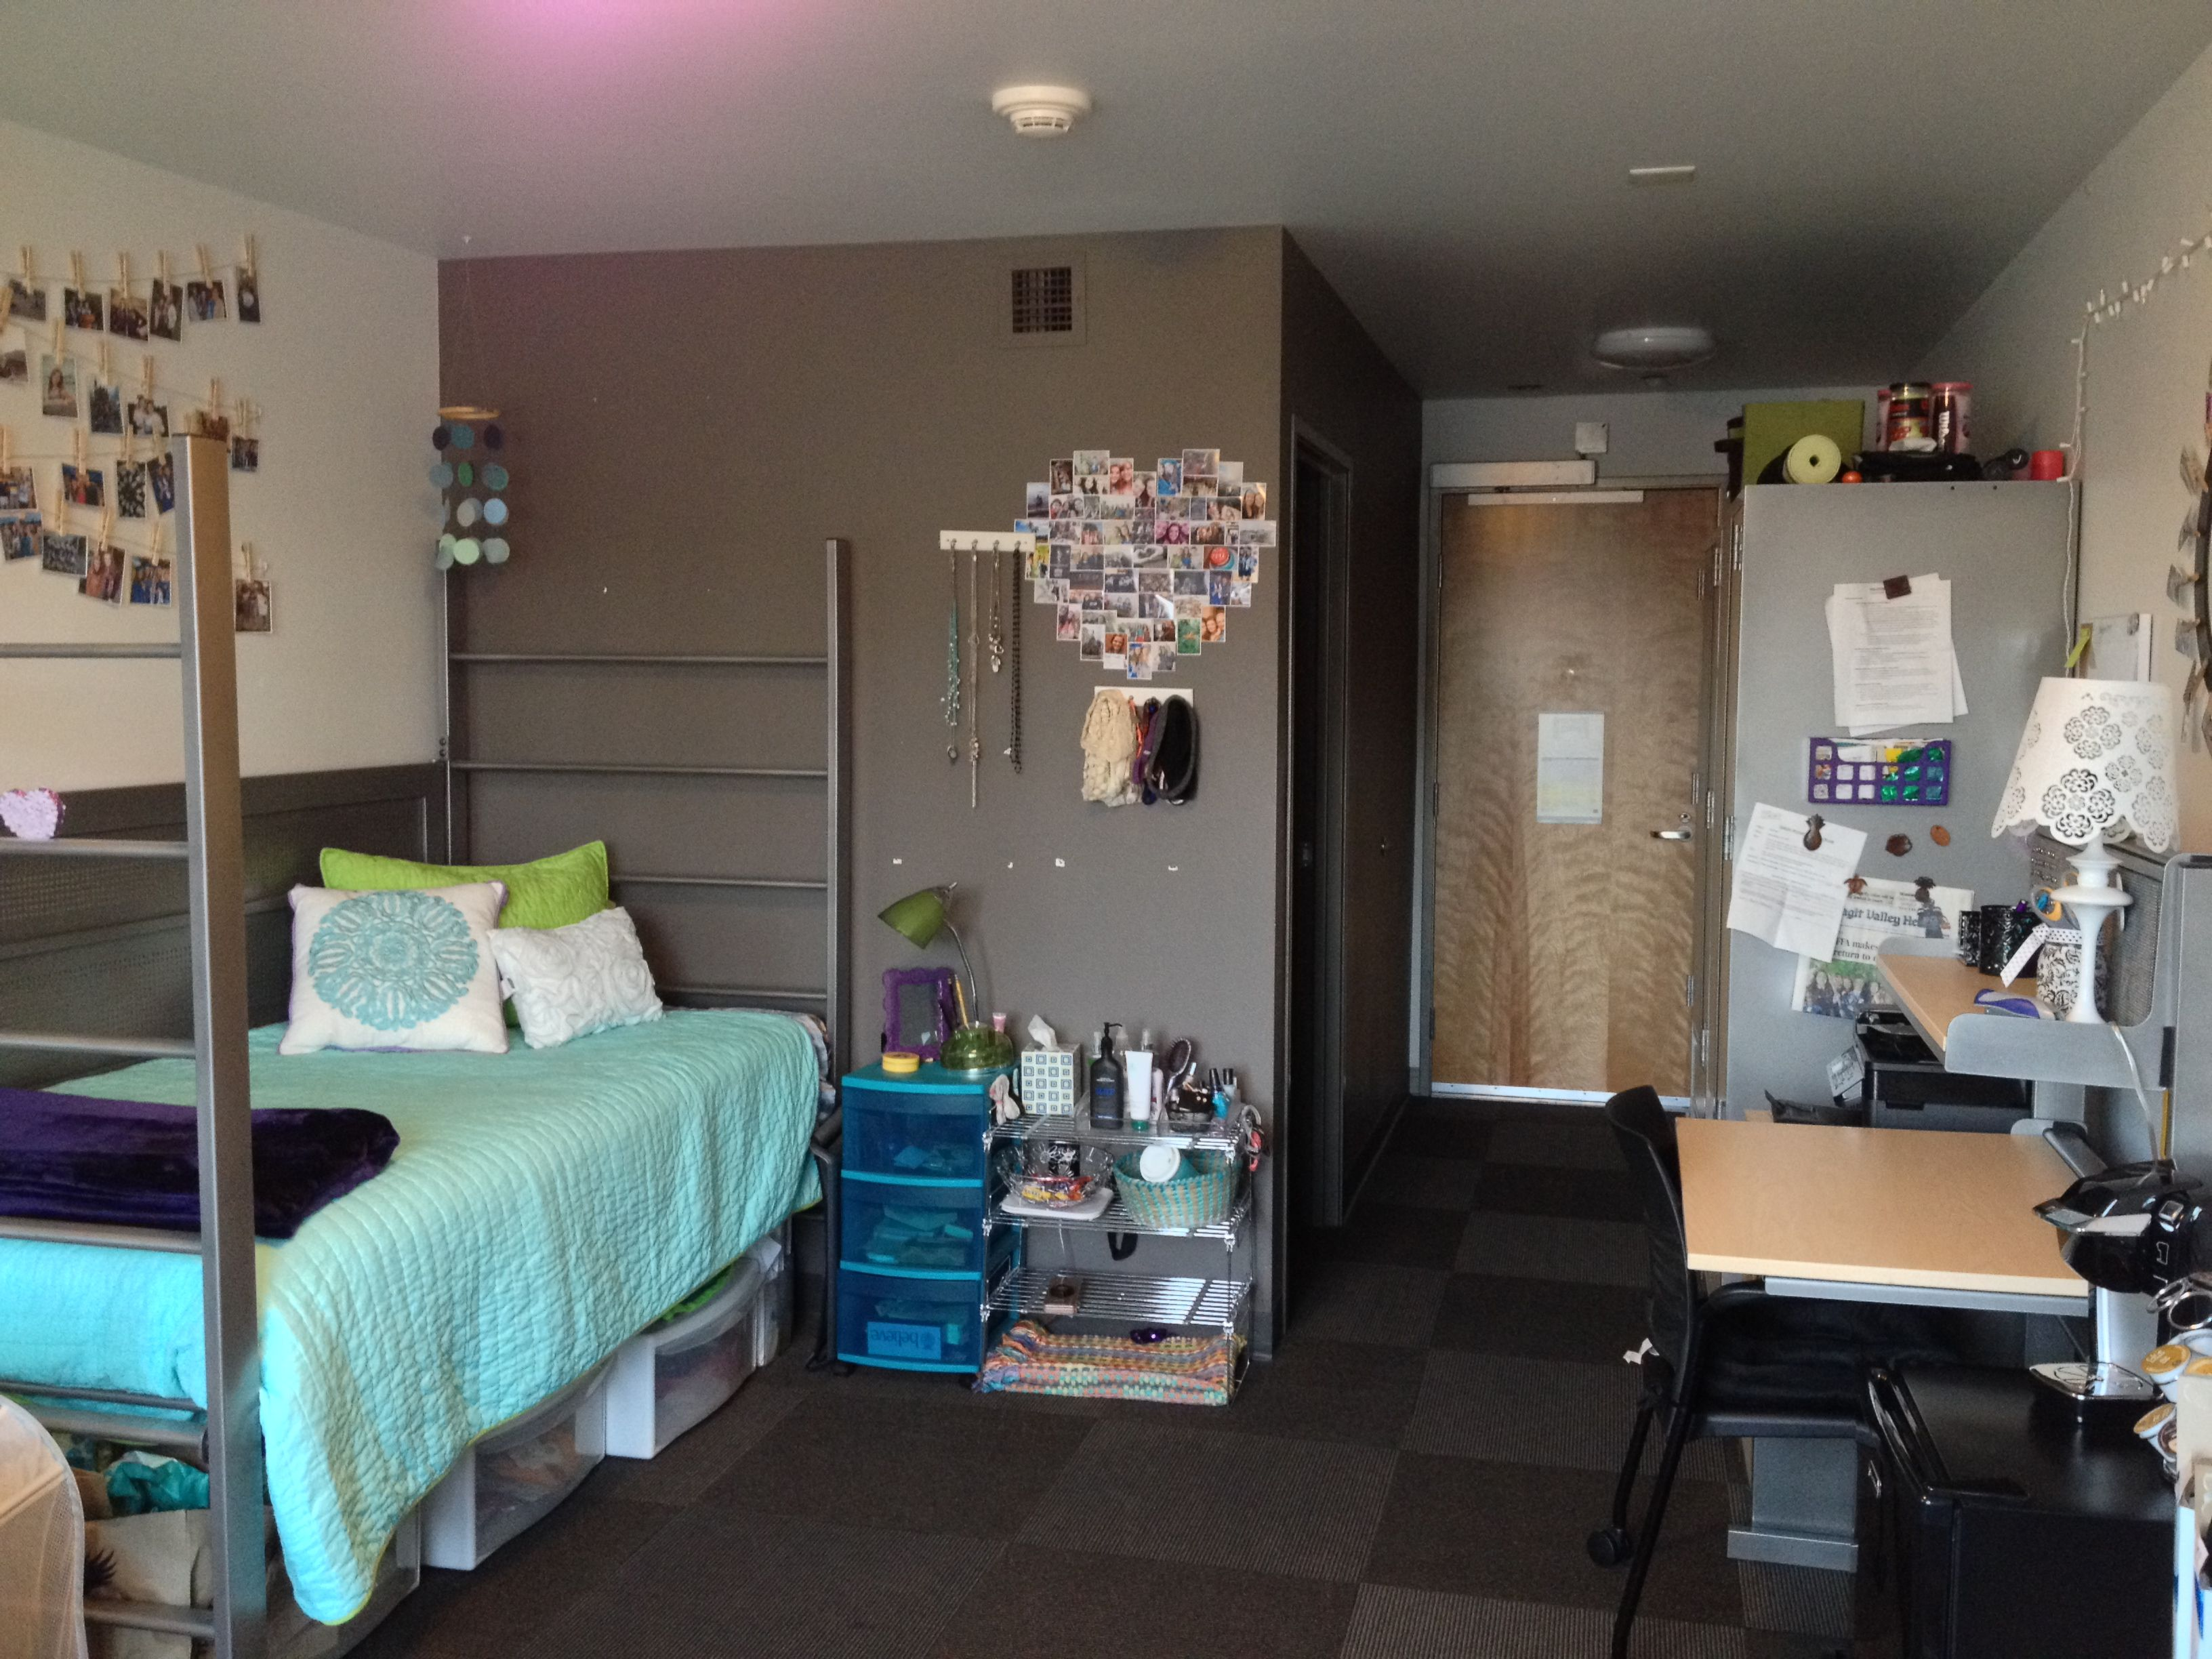 My Freshman Dorm Room ) #Uw #Dorm #College